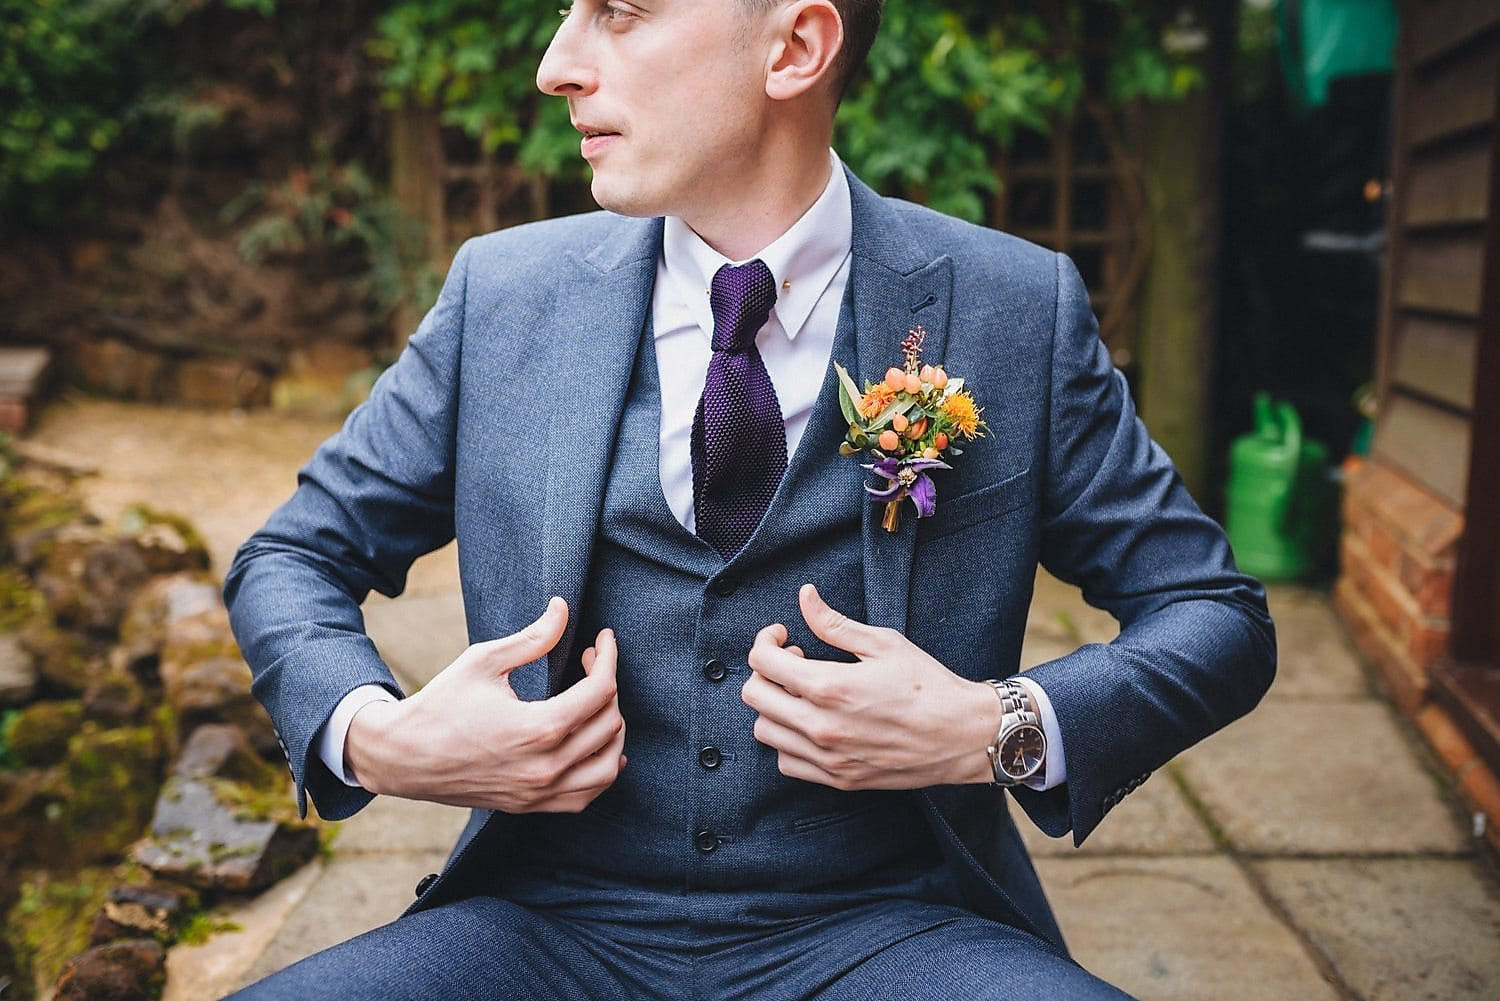 Portrait of groom in grey suit and waistcoat and large purple and orange floral buttonhole. He straightens his jacket and looks off to one side.